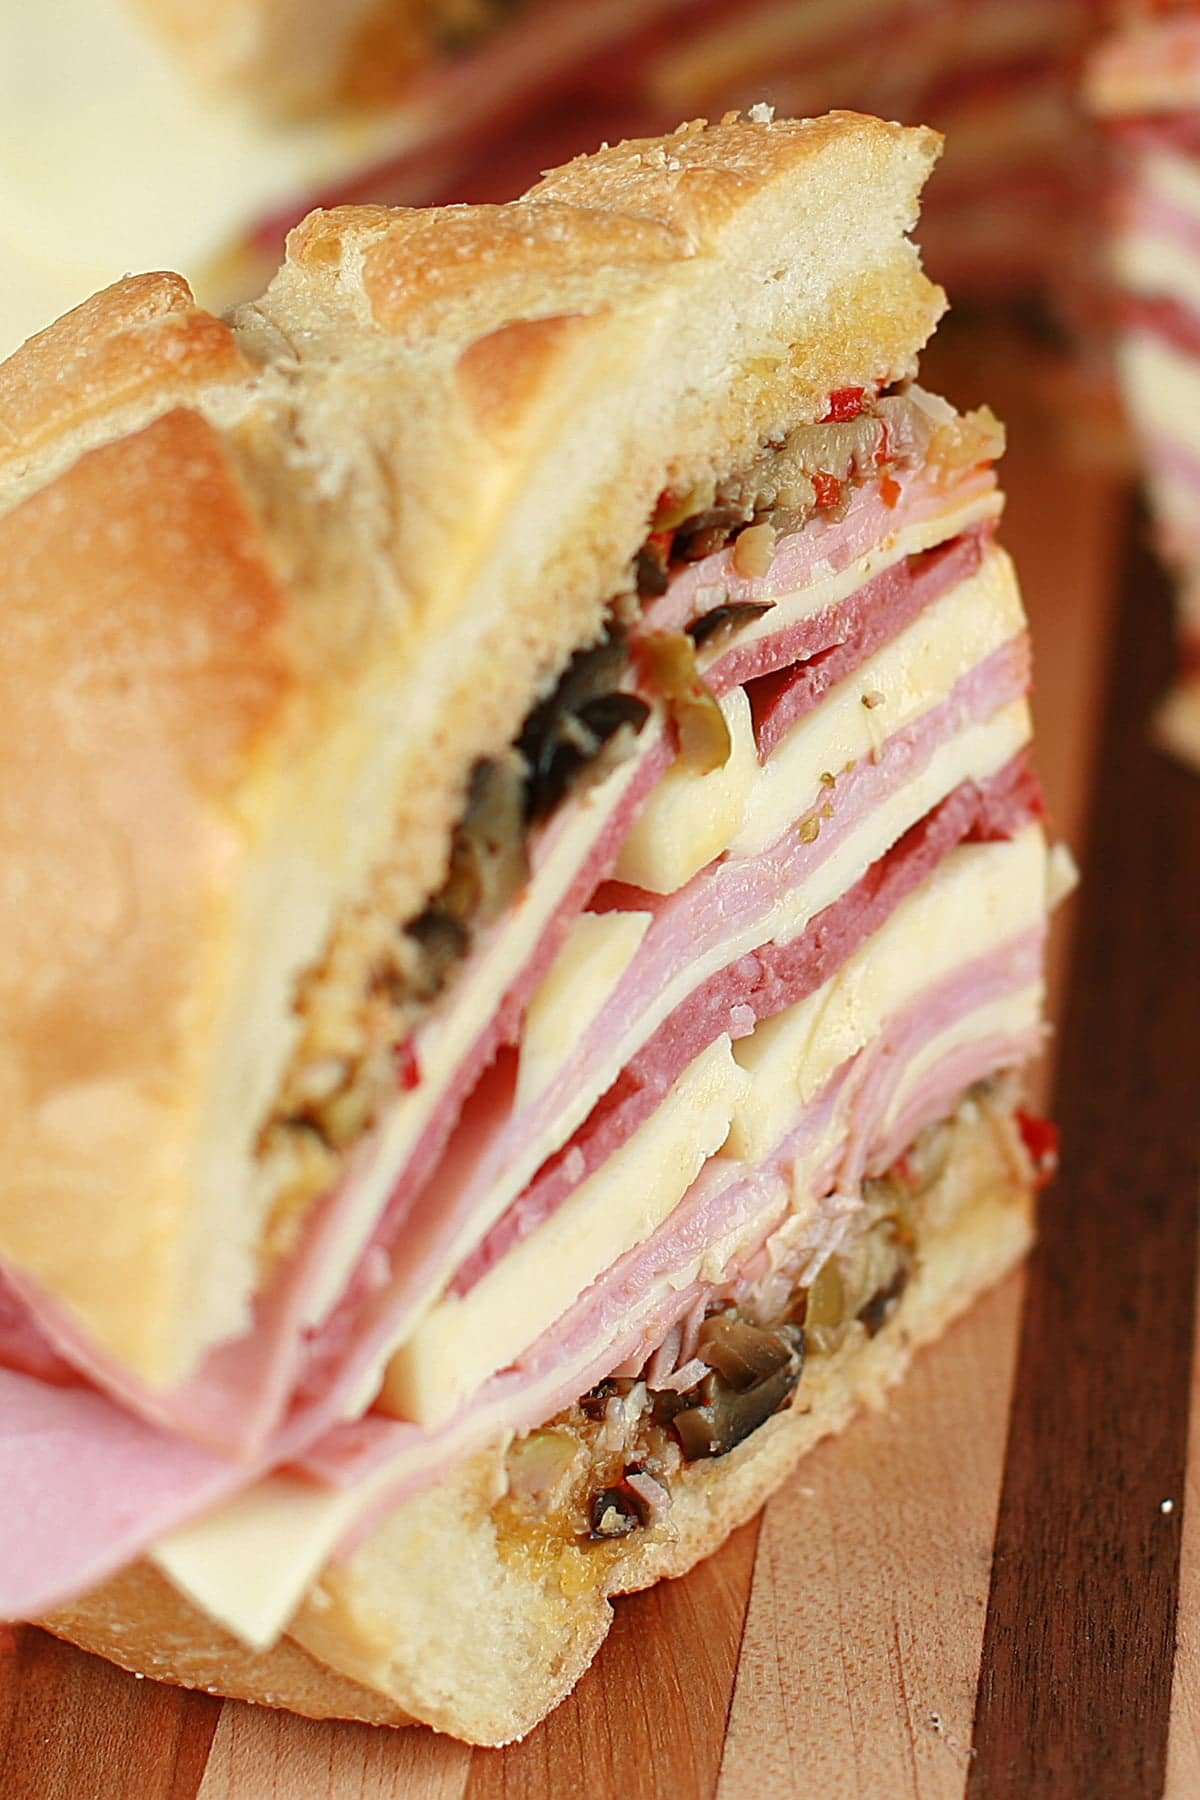 A large muffaletta sandwich: A full loaf of bread, stuffed with many layers of meats, cheeses, and olive salad.